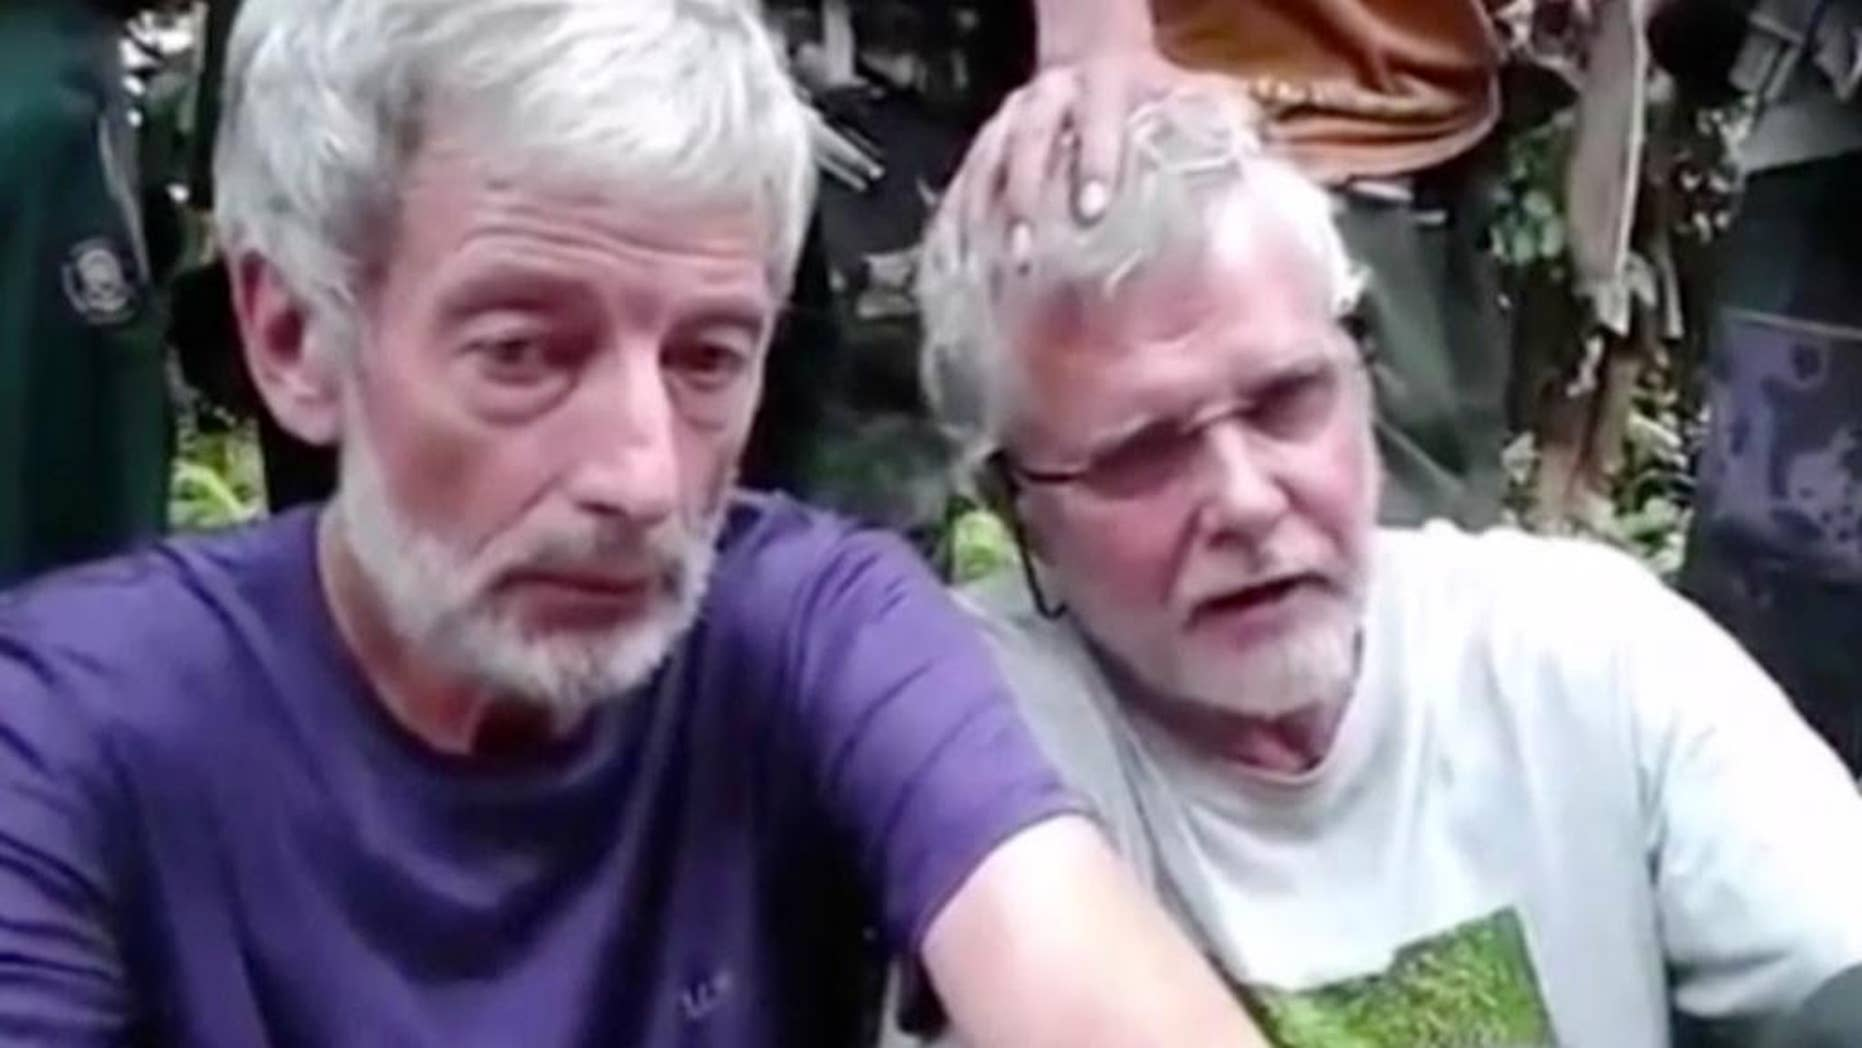 FILE - This file image made from undated militant video, shows Canadians Robert Hall, left, and John Ridsdel, right. With a black Islamic State group-style flag as a backdrop, Abu Sayyaf fighters beheaded Canadian hostage Hall on southern Jolo island on Monday, June 13, 2016,  after a ransom deadline passed.  Enraged by the beheading of a second Canadian hostage by ransom-seeking Abu Sayyaf extremists, Philippine troops pressed a major offensive in the south Tuesday, June 14, 2016,  but there was no sign of an end to the small but brutal insurgency that a new president will inherit in about two weeks. (Militant Video via AP Video, File) NO SALES, MANDATORY CREDIT